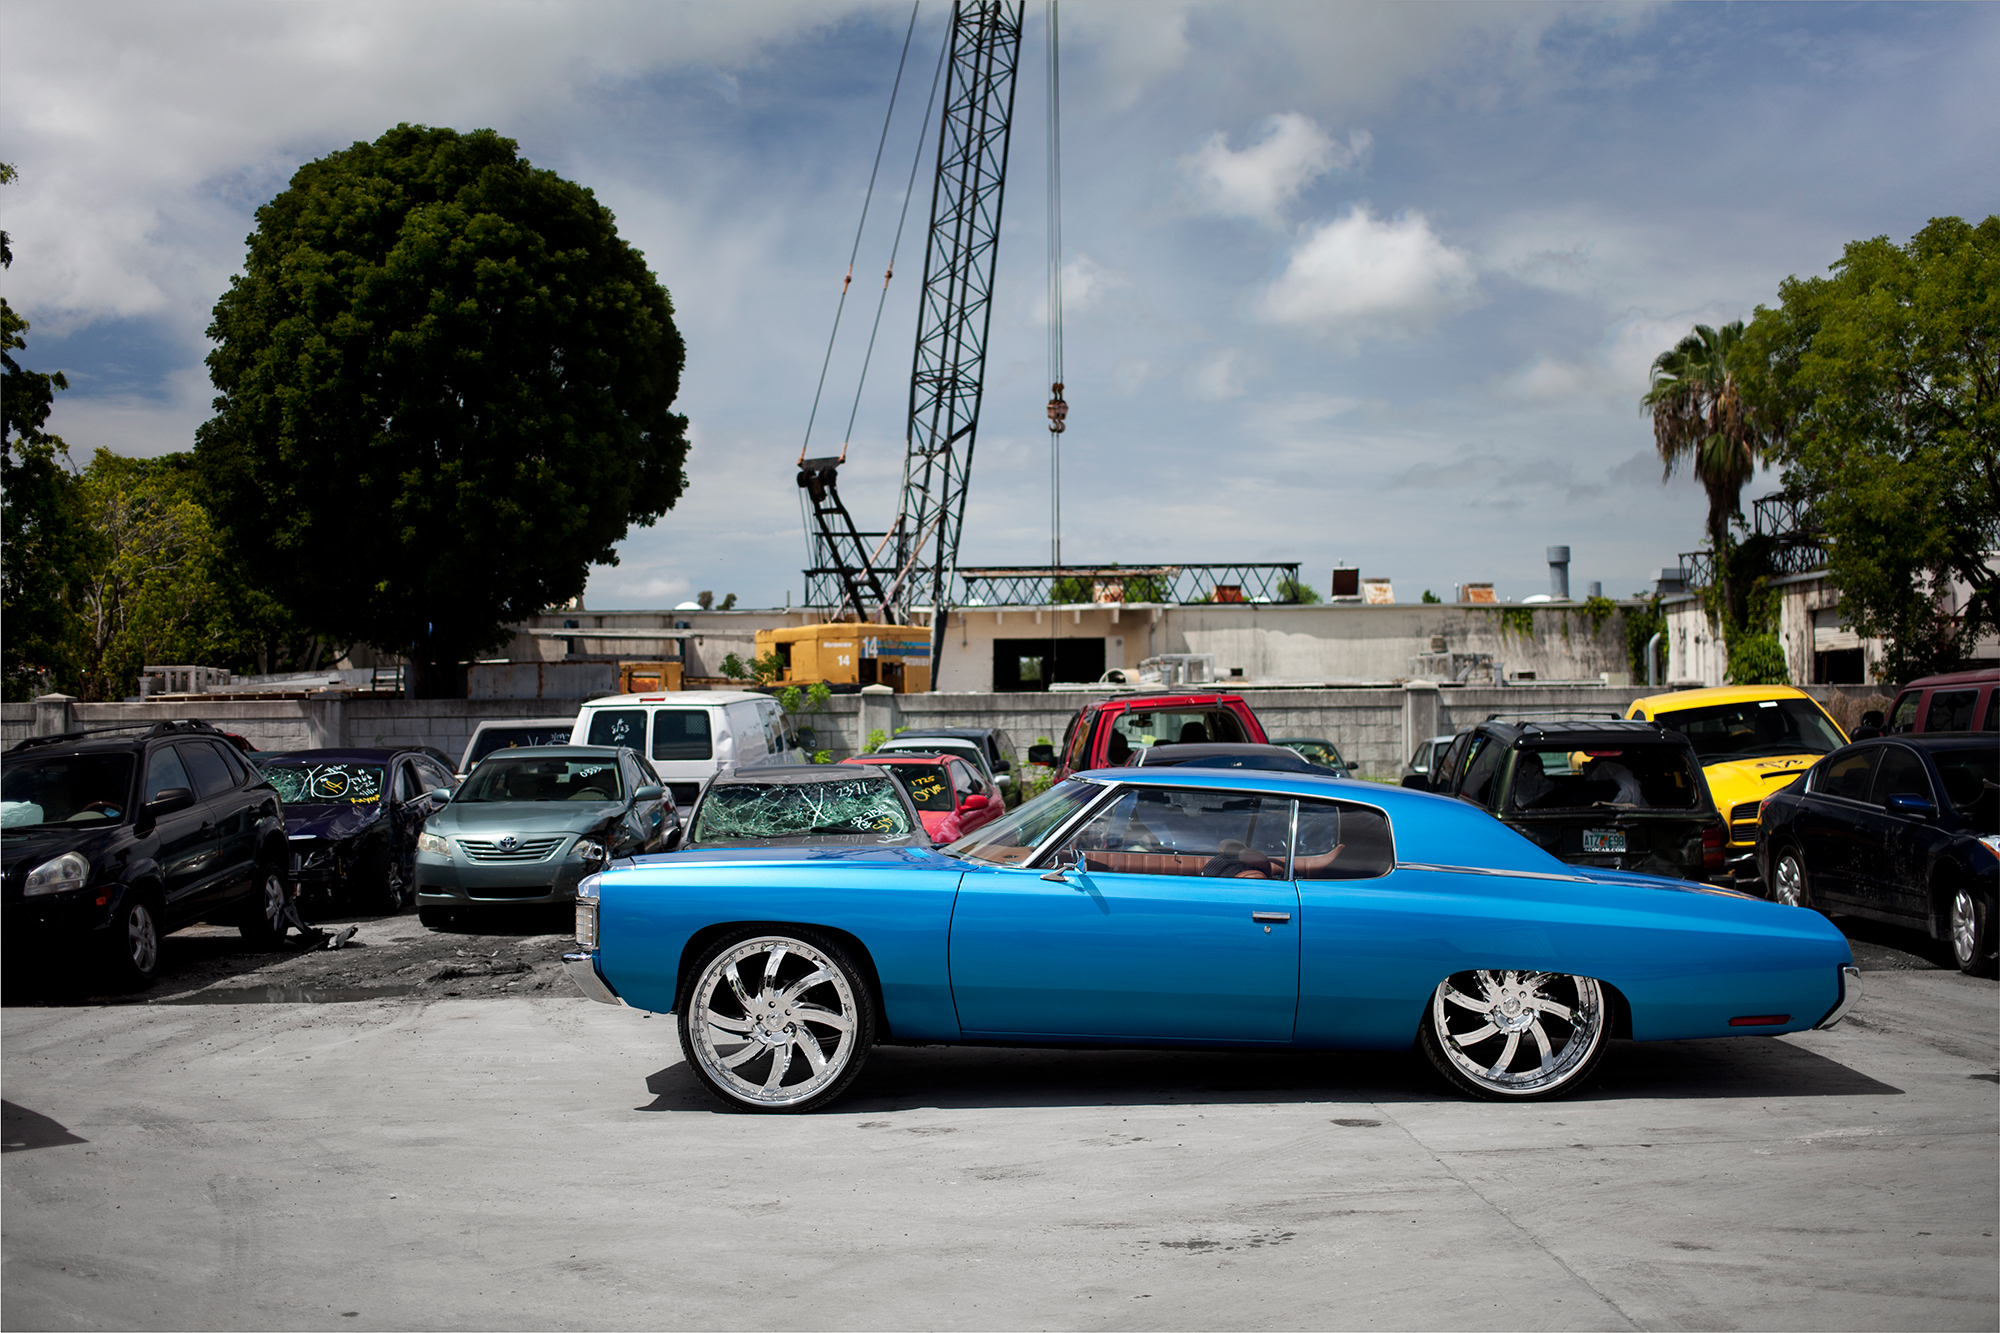 Custom Donk Cars For Sale